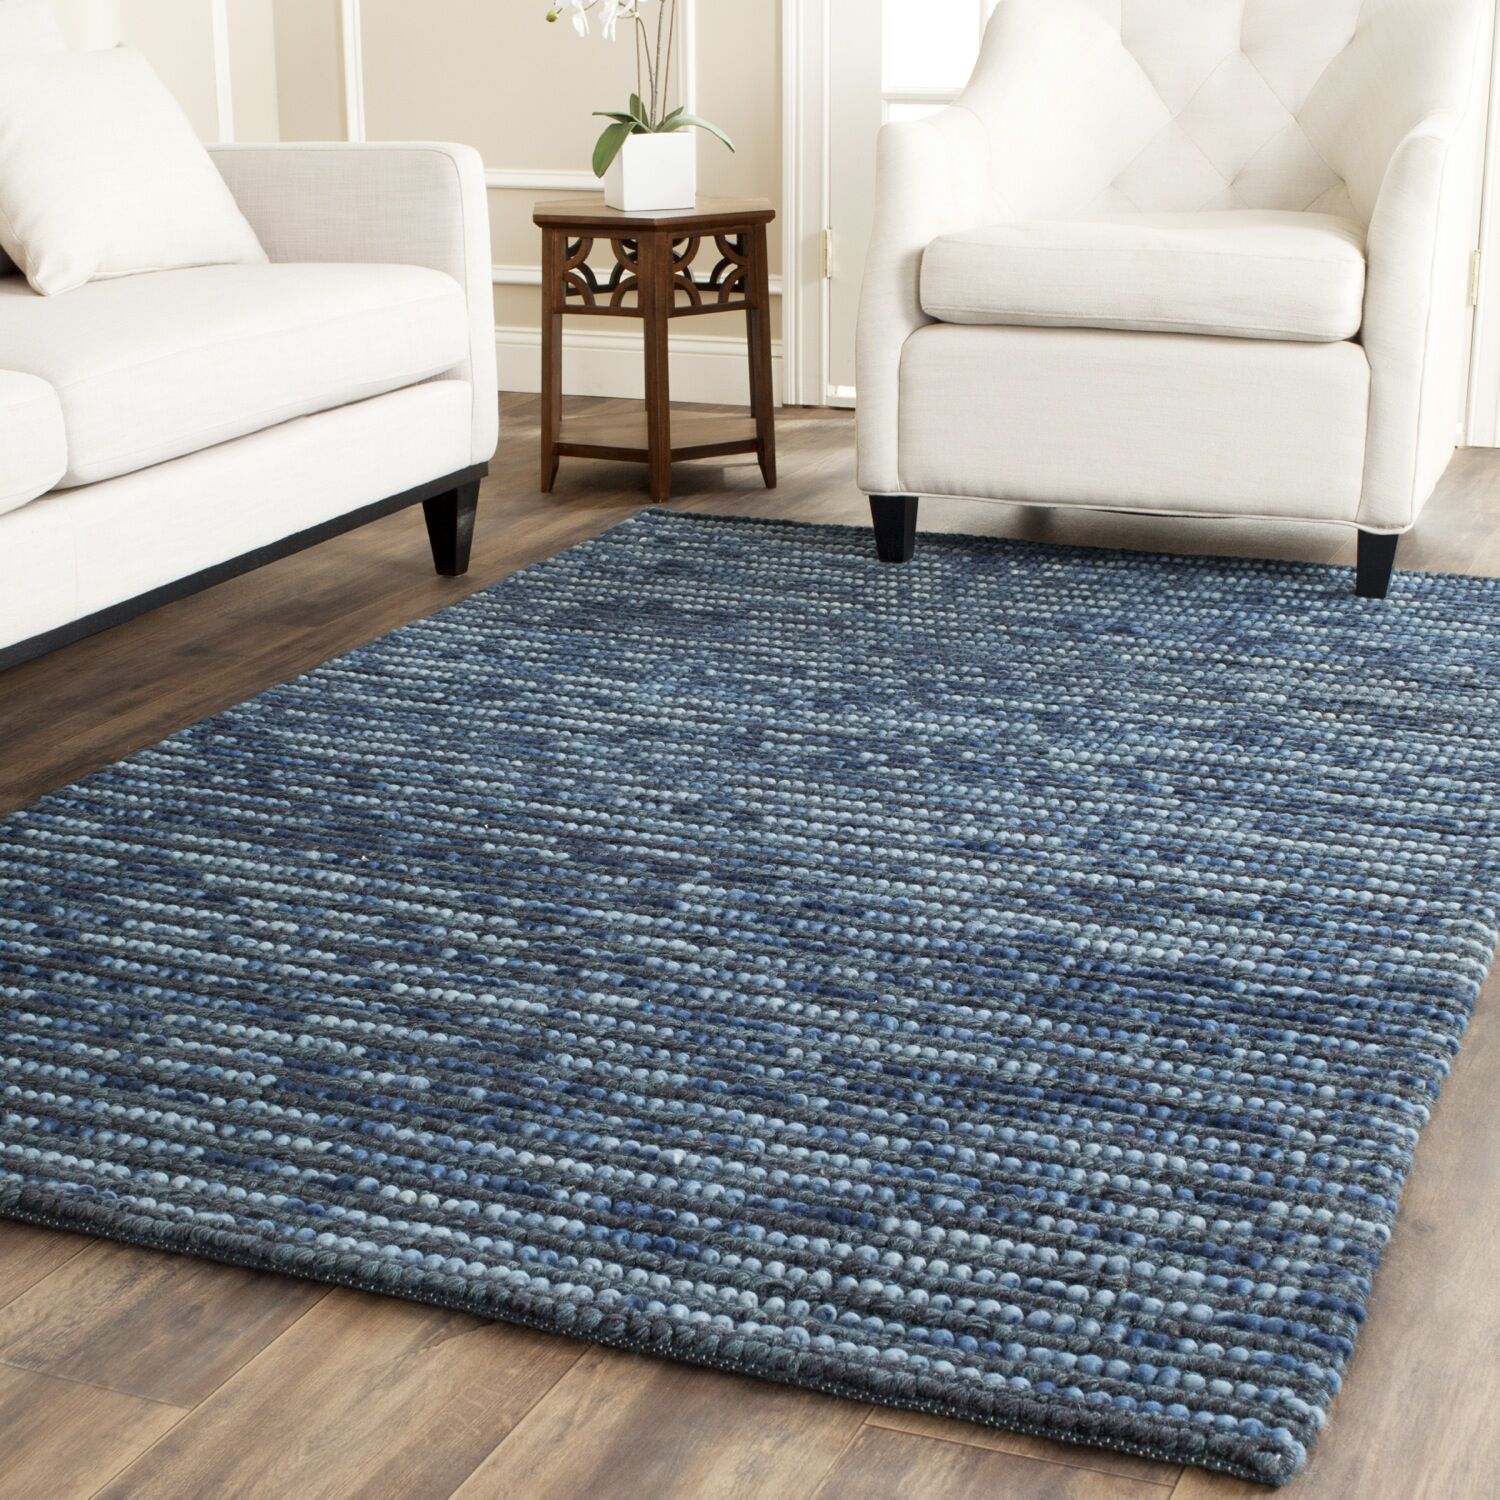 Makhi Hand-Knotted Dark Blue Area Rug Rug Size: Rectangle 9' x 12'